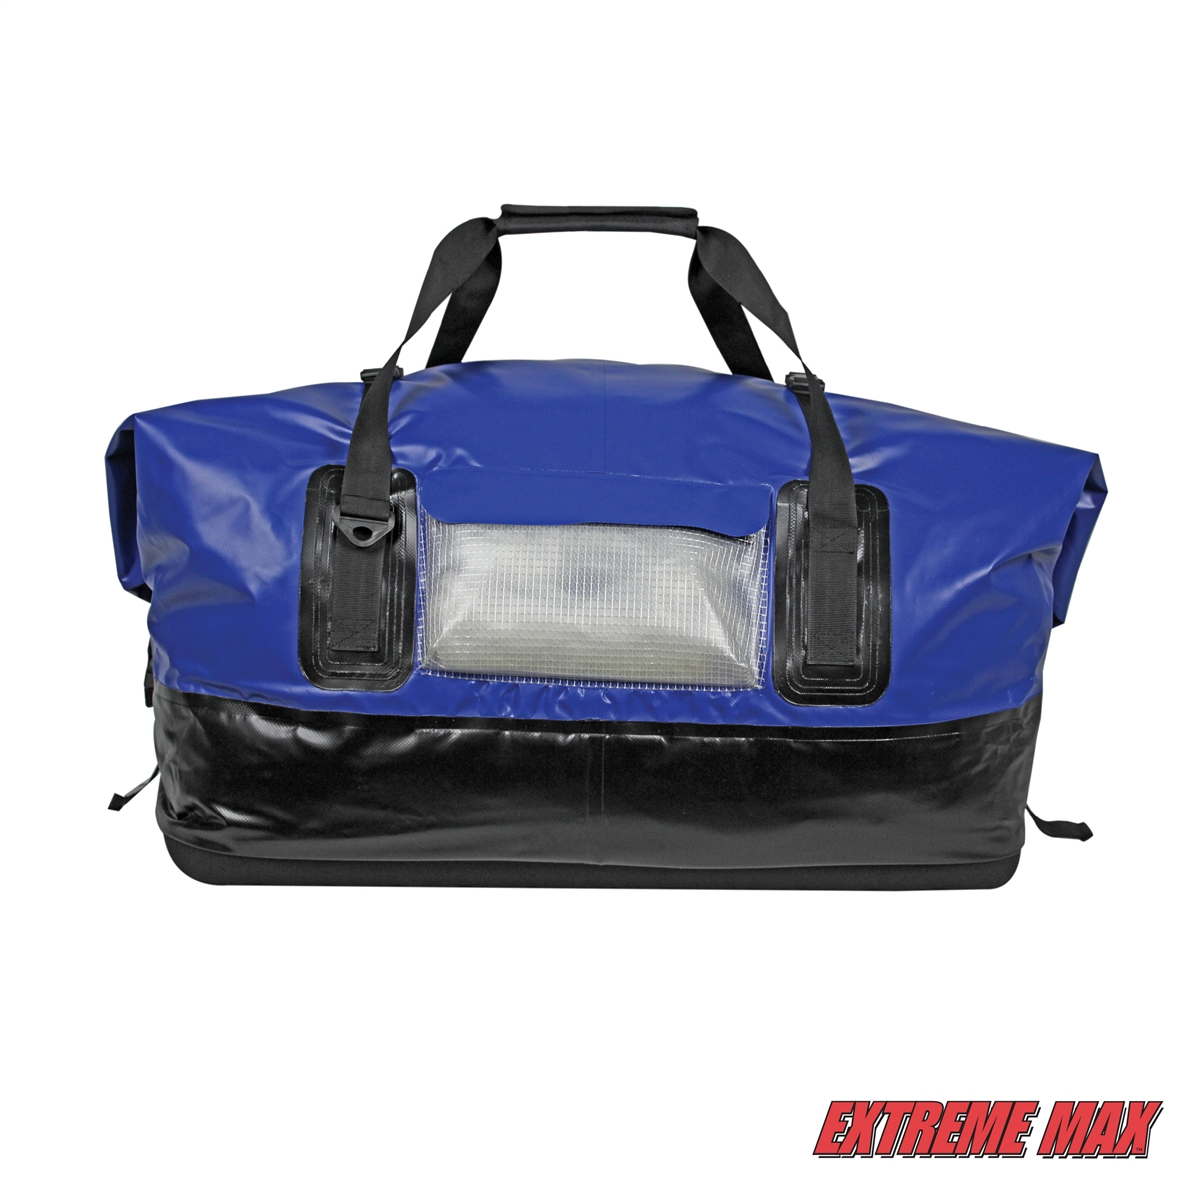 Extreme Max 3006 7345 Dry Tech Waterproof Roll Top Duffel Bag Extra Large 110 Liter Blue